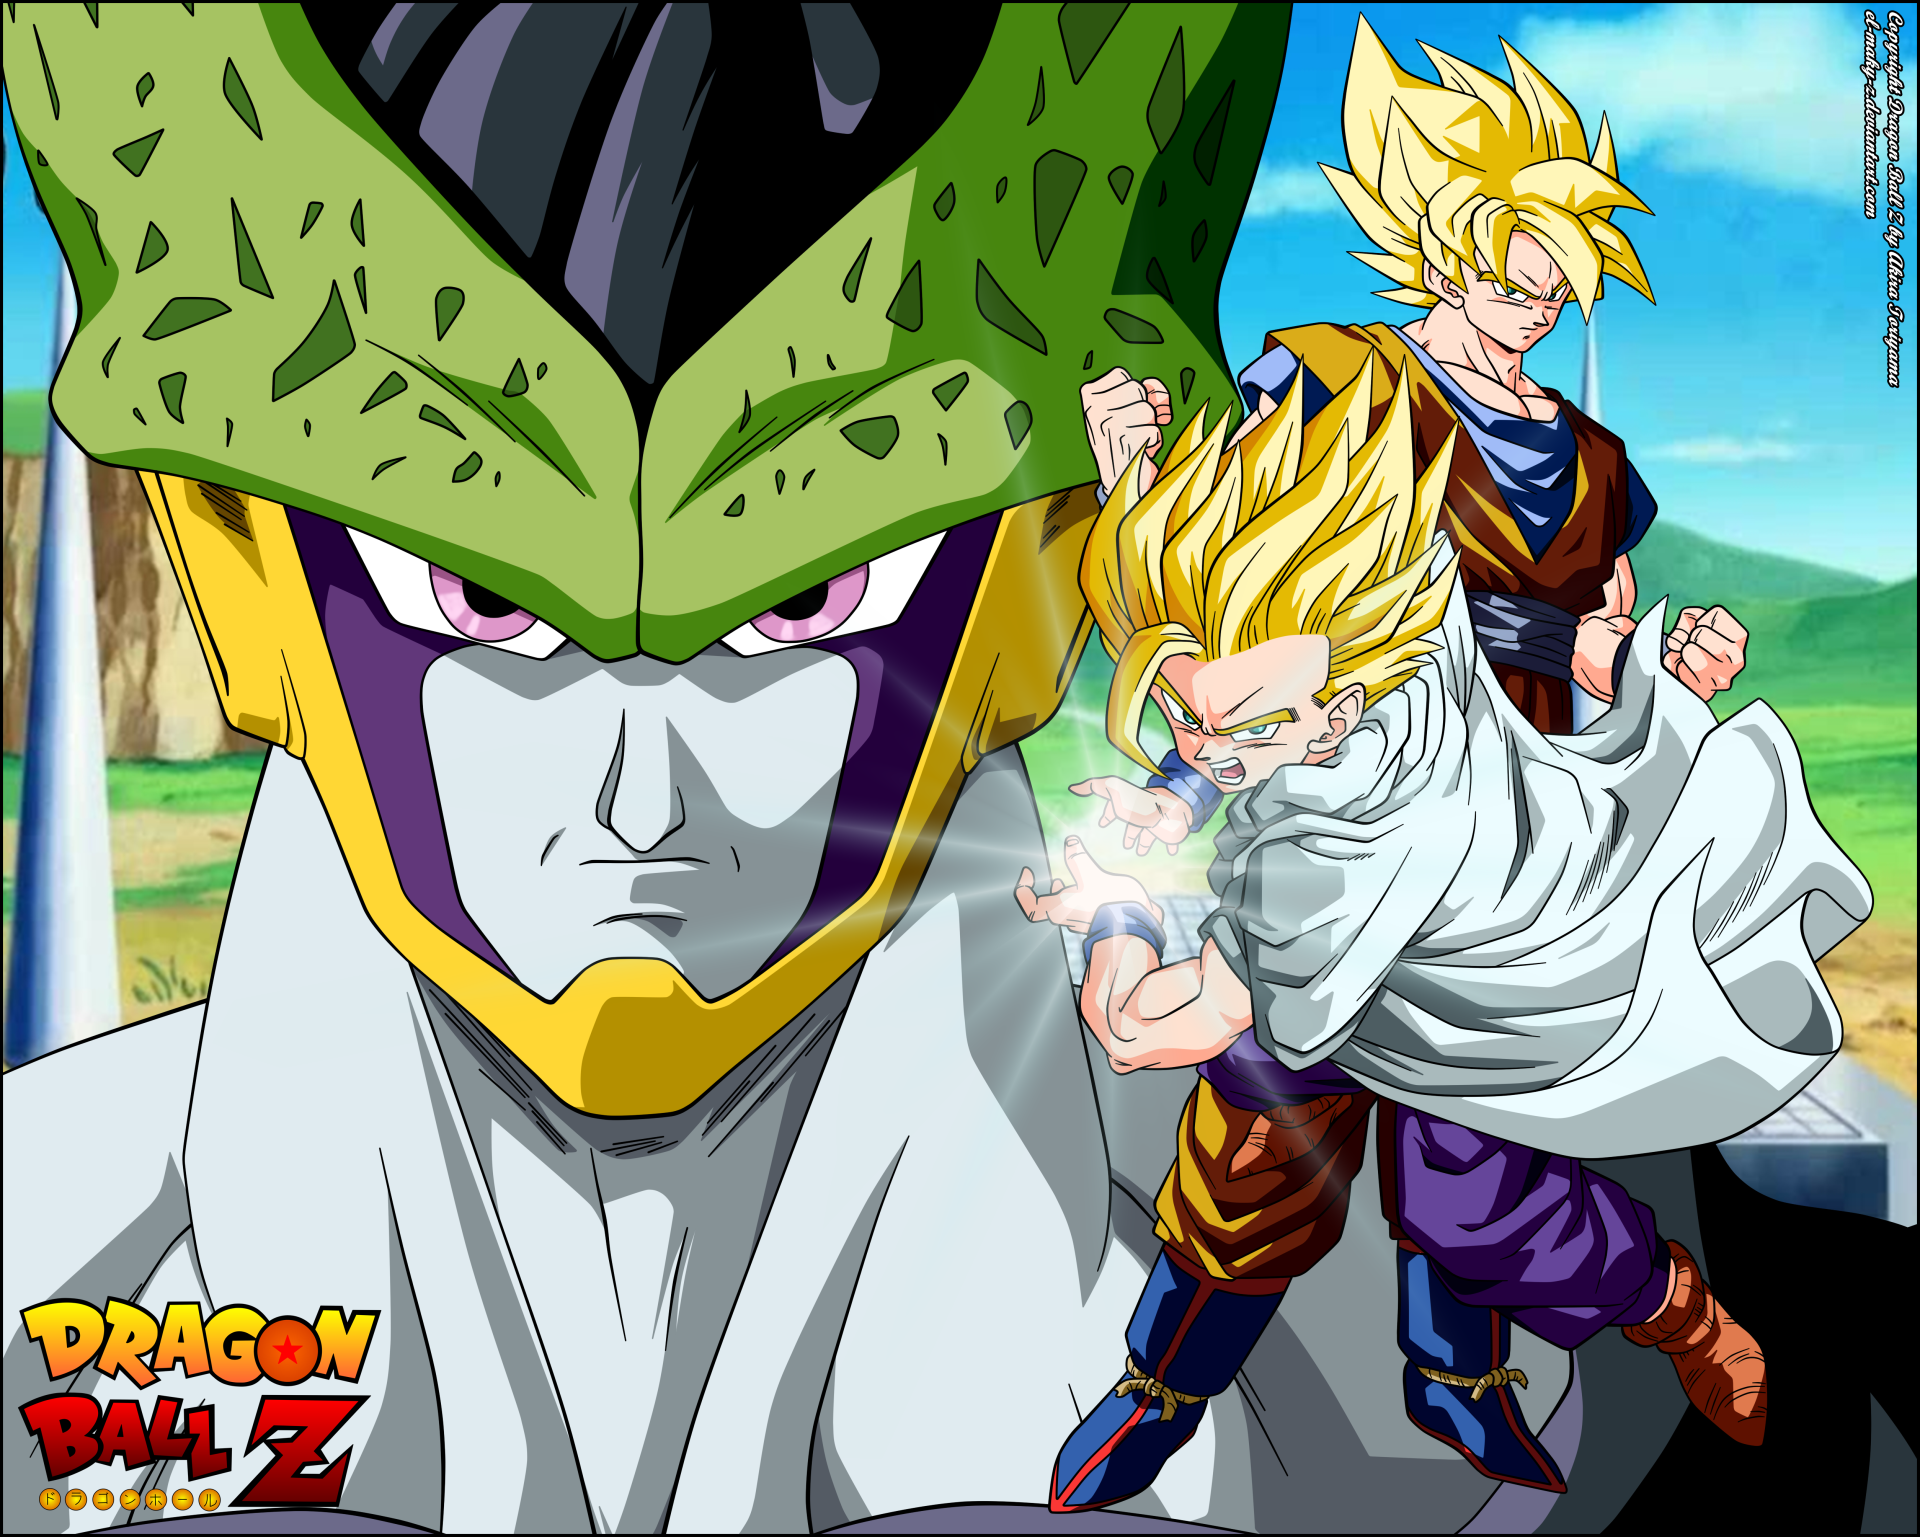 Review | Dragon Ball Z - A Saga Cell e os Androides